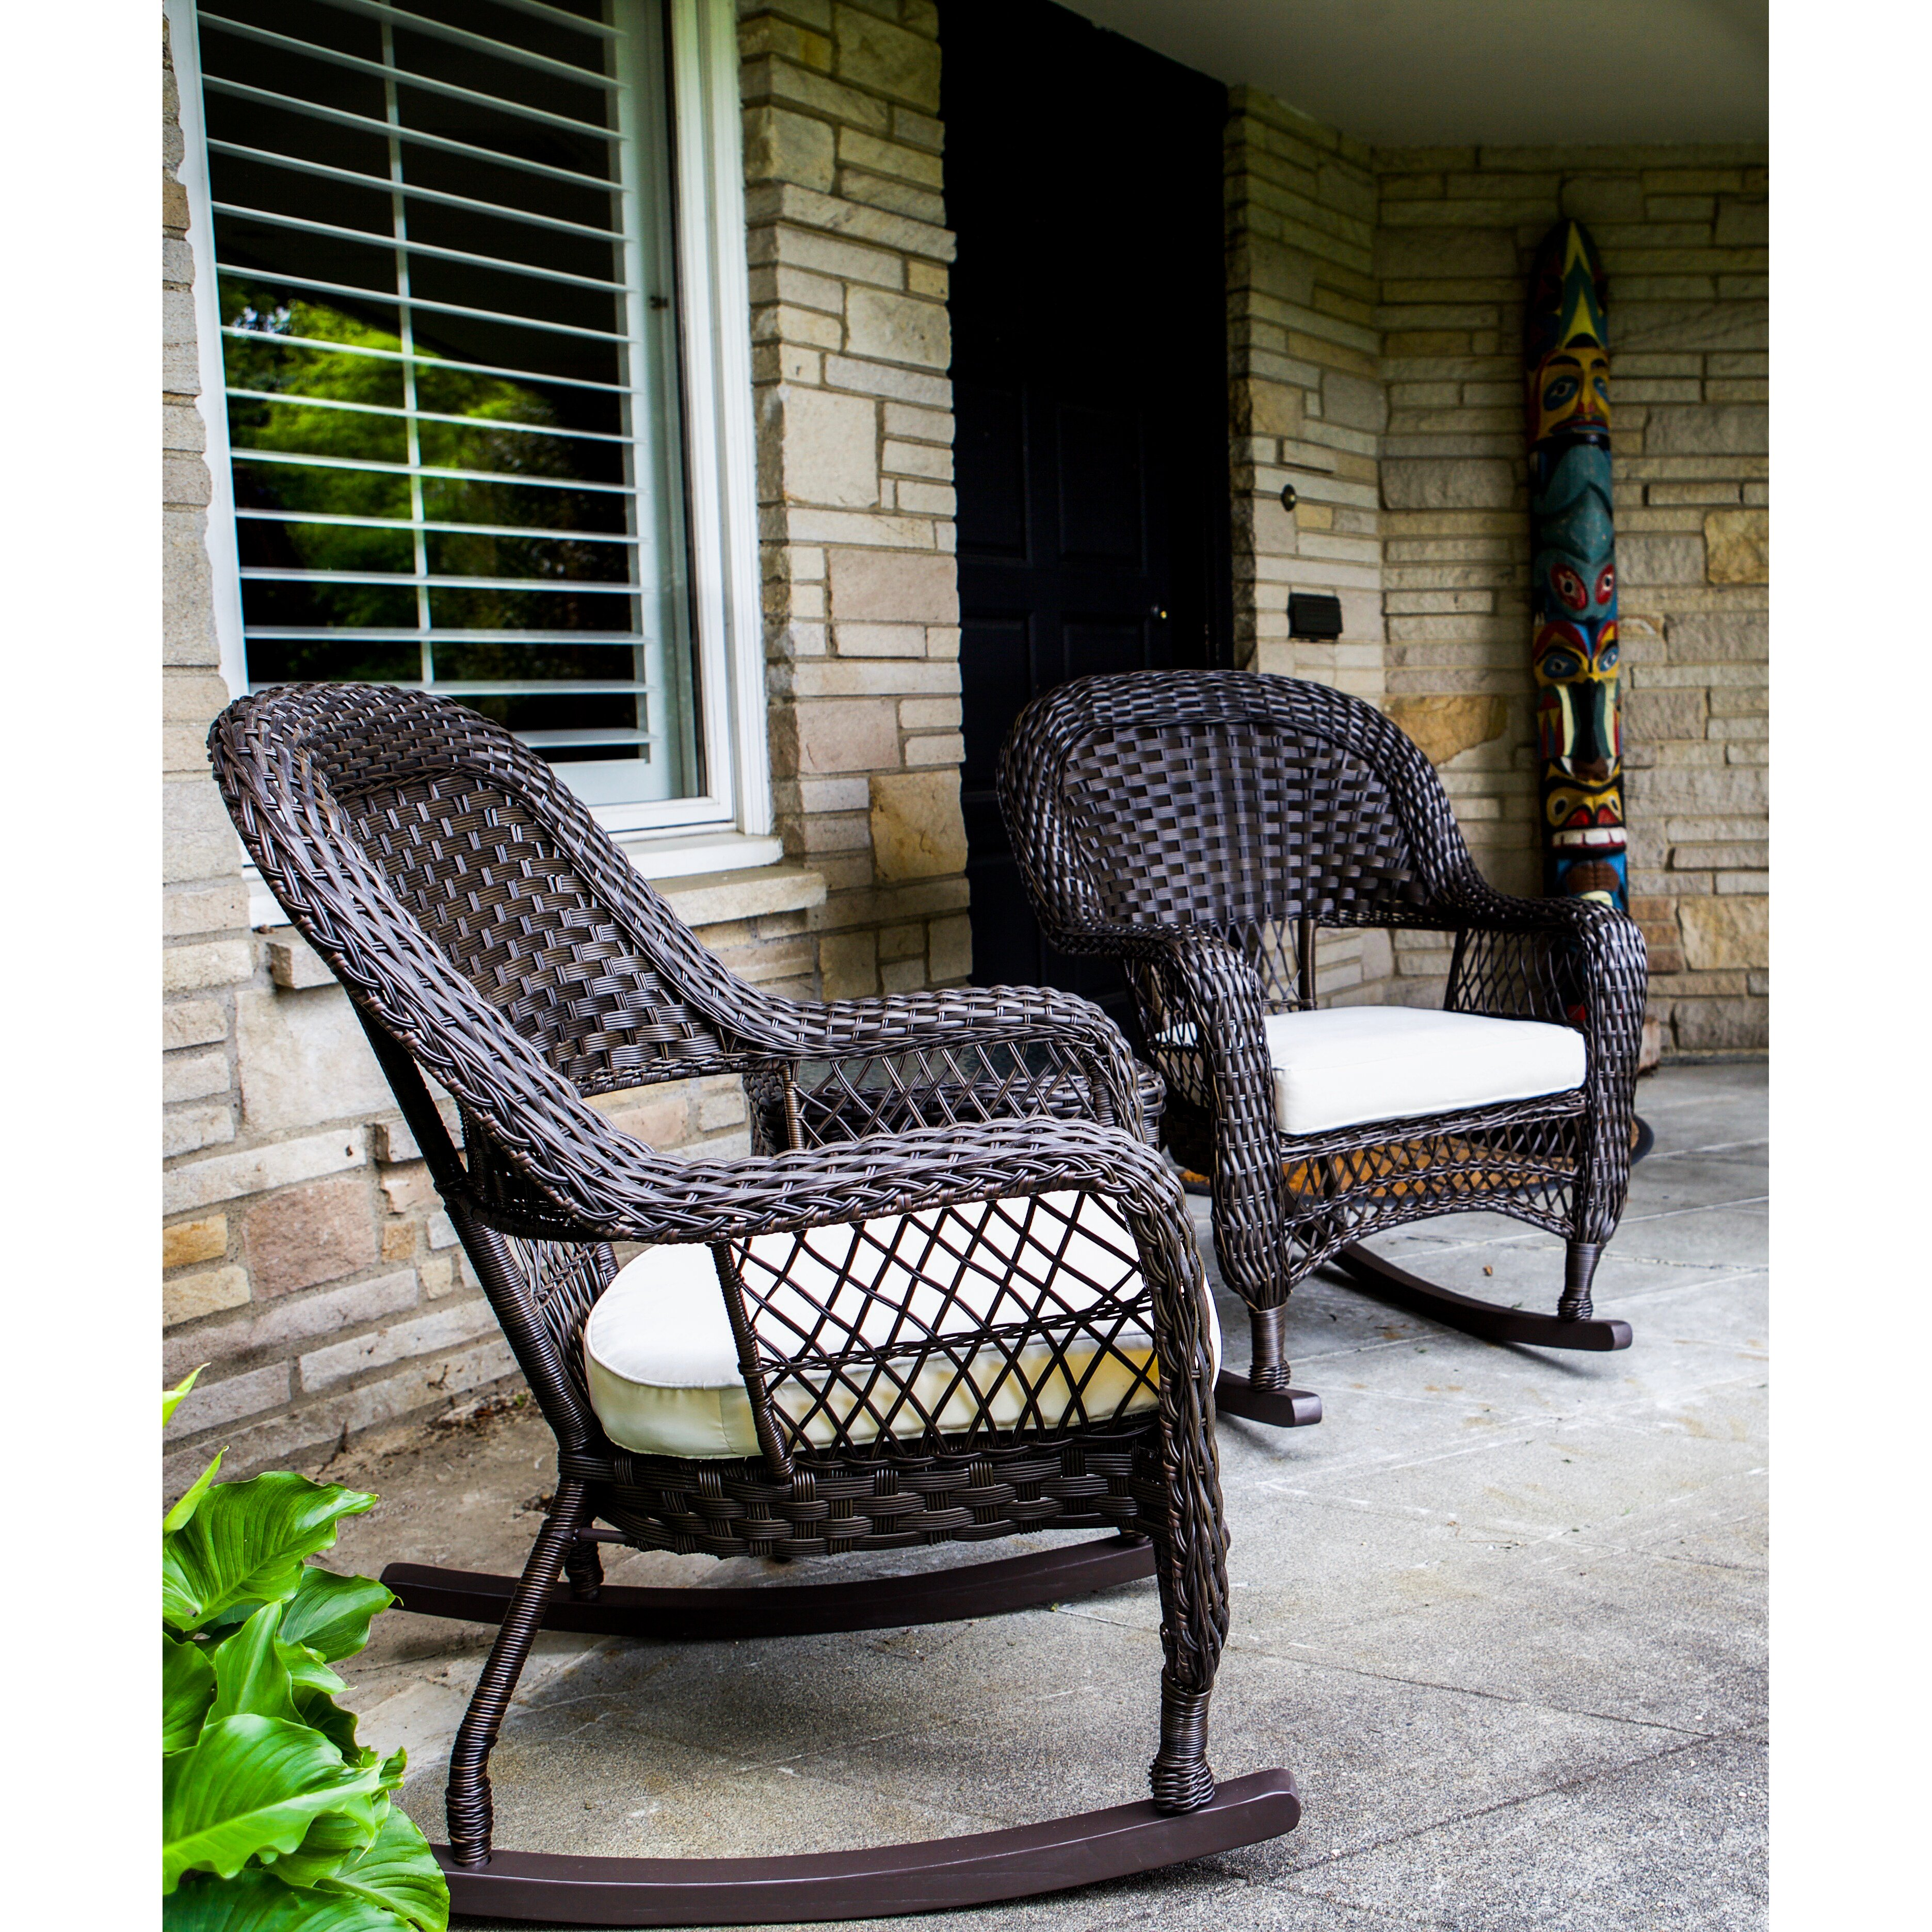 Sol Siesta Veranda 3 Piece Rocking Chair Set With Cushions